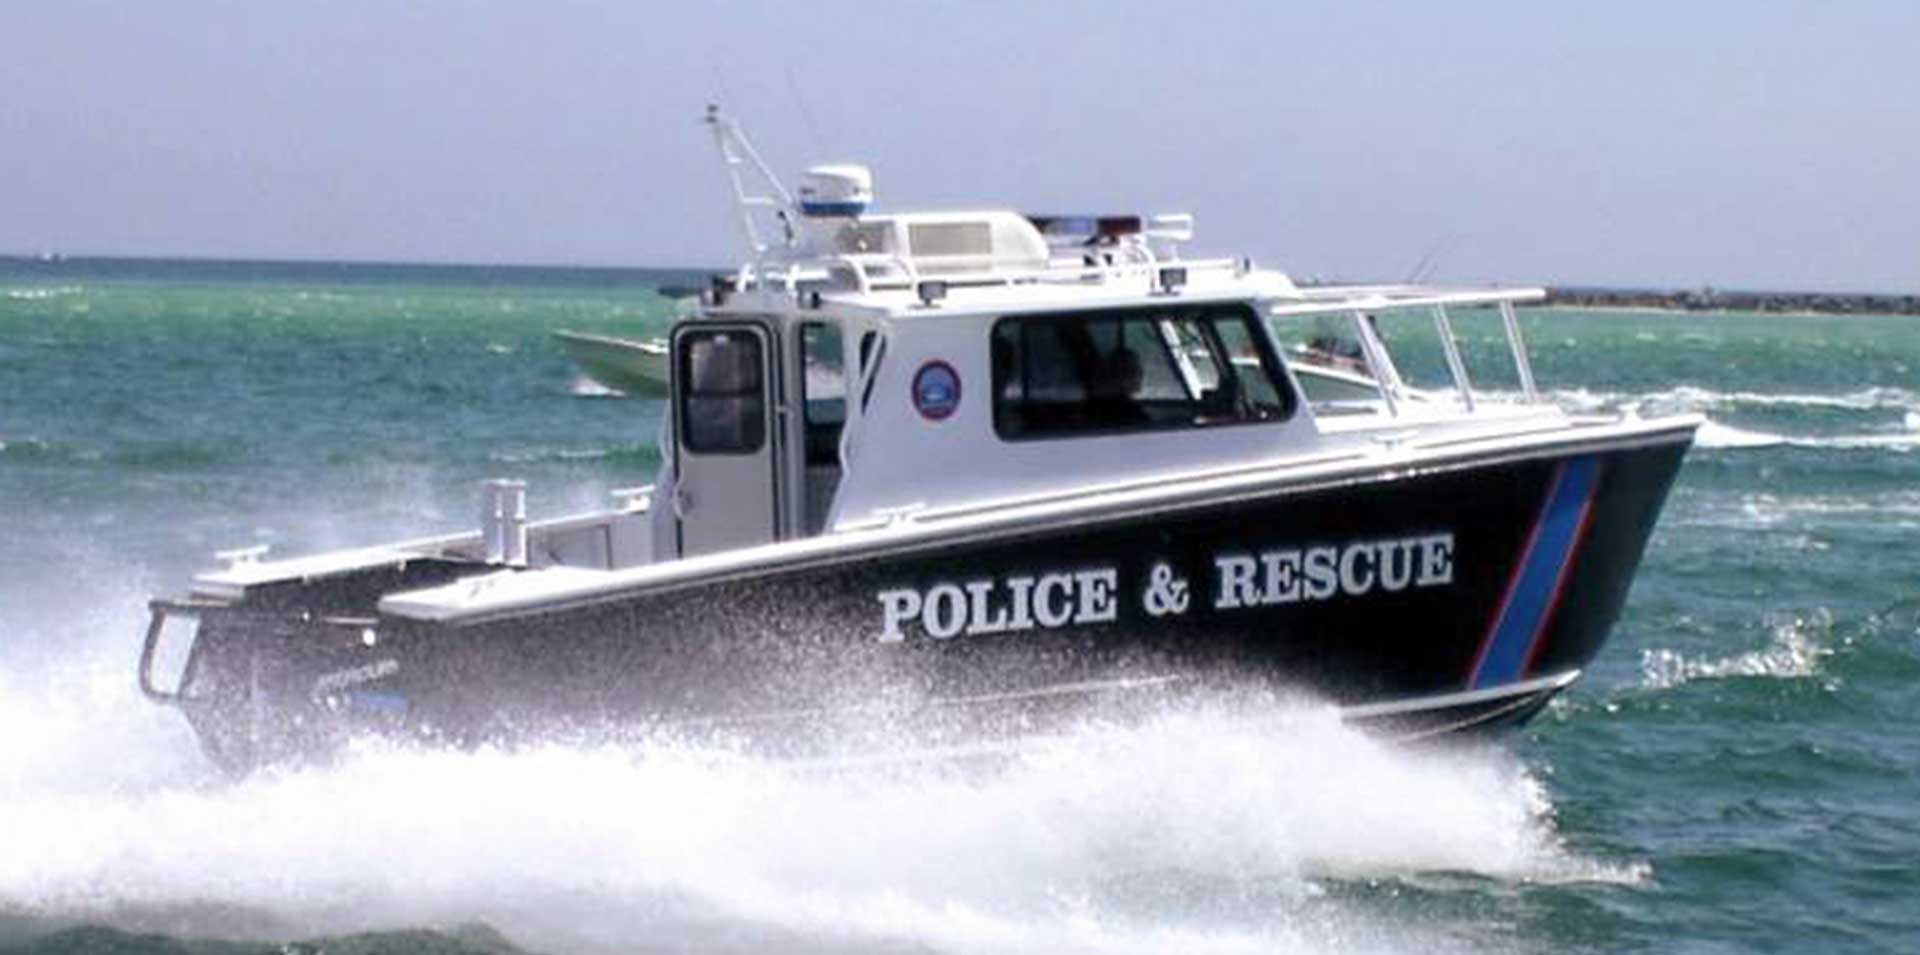 Silver Ships law enforcement police and rescue boat on ocean